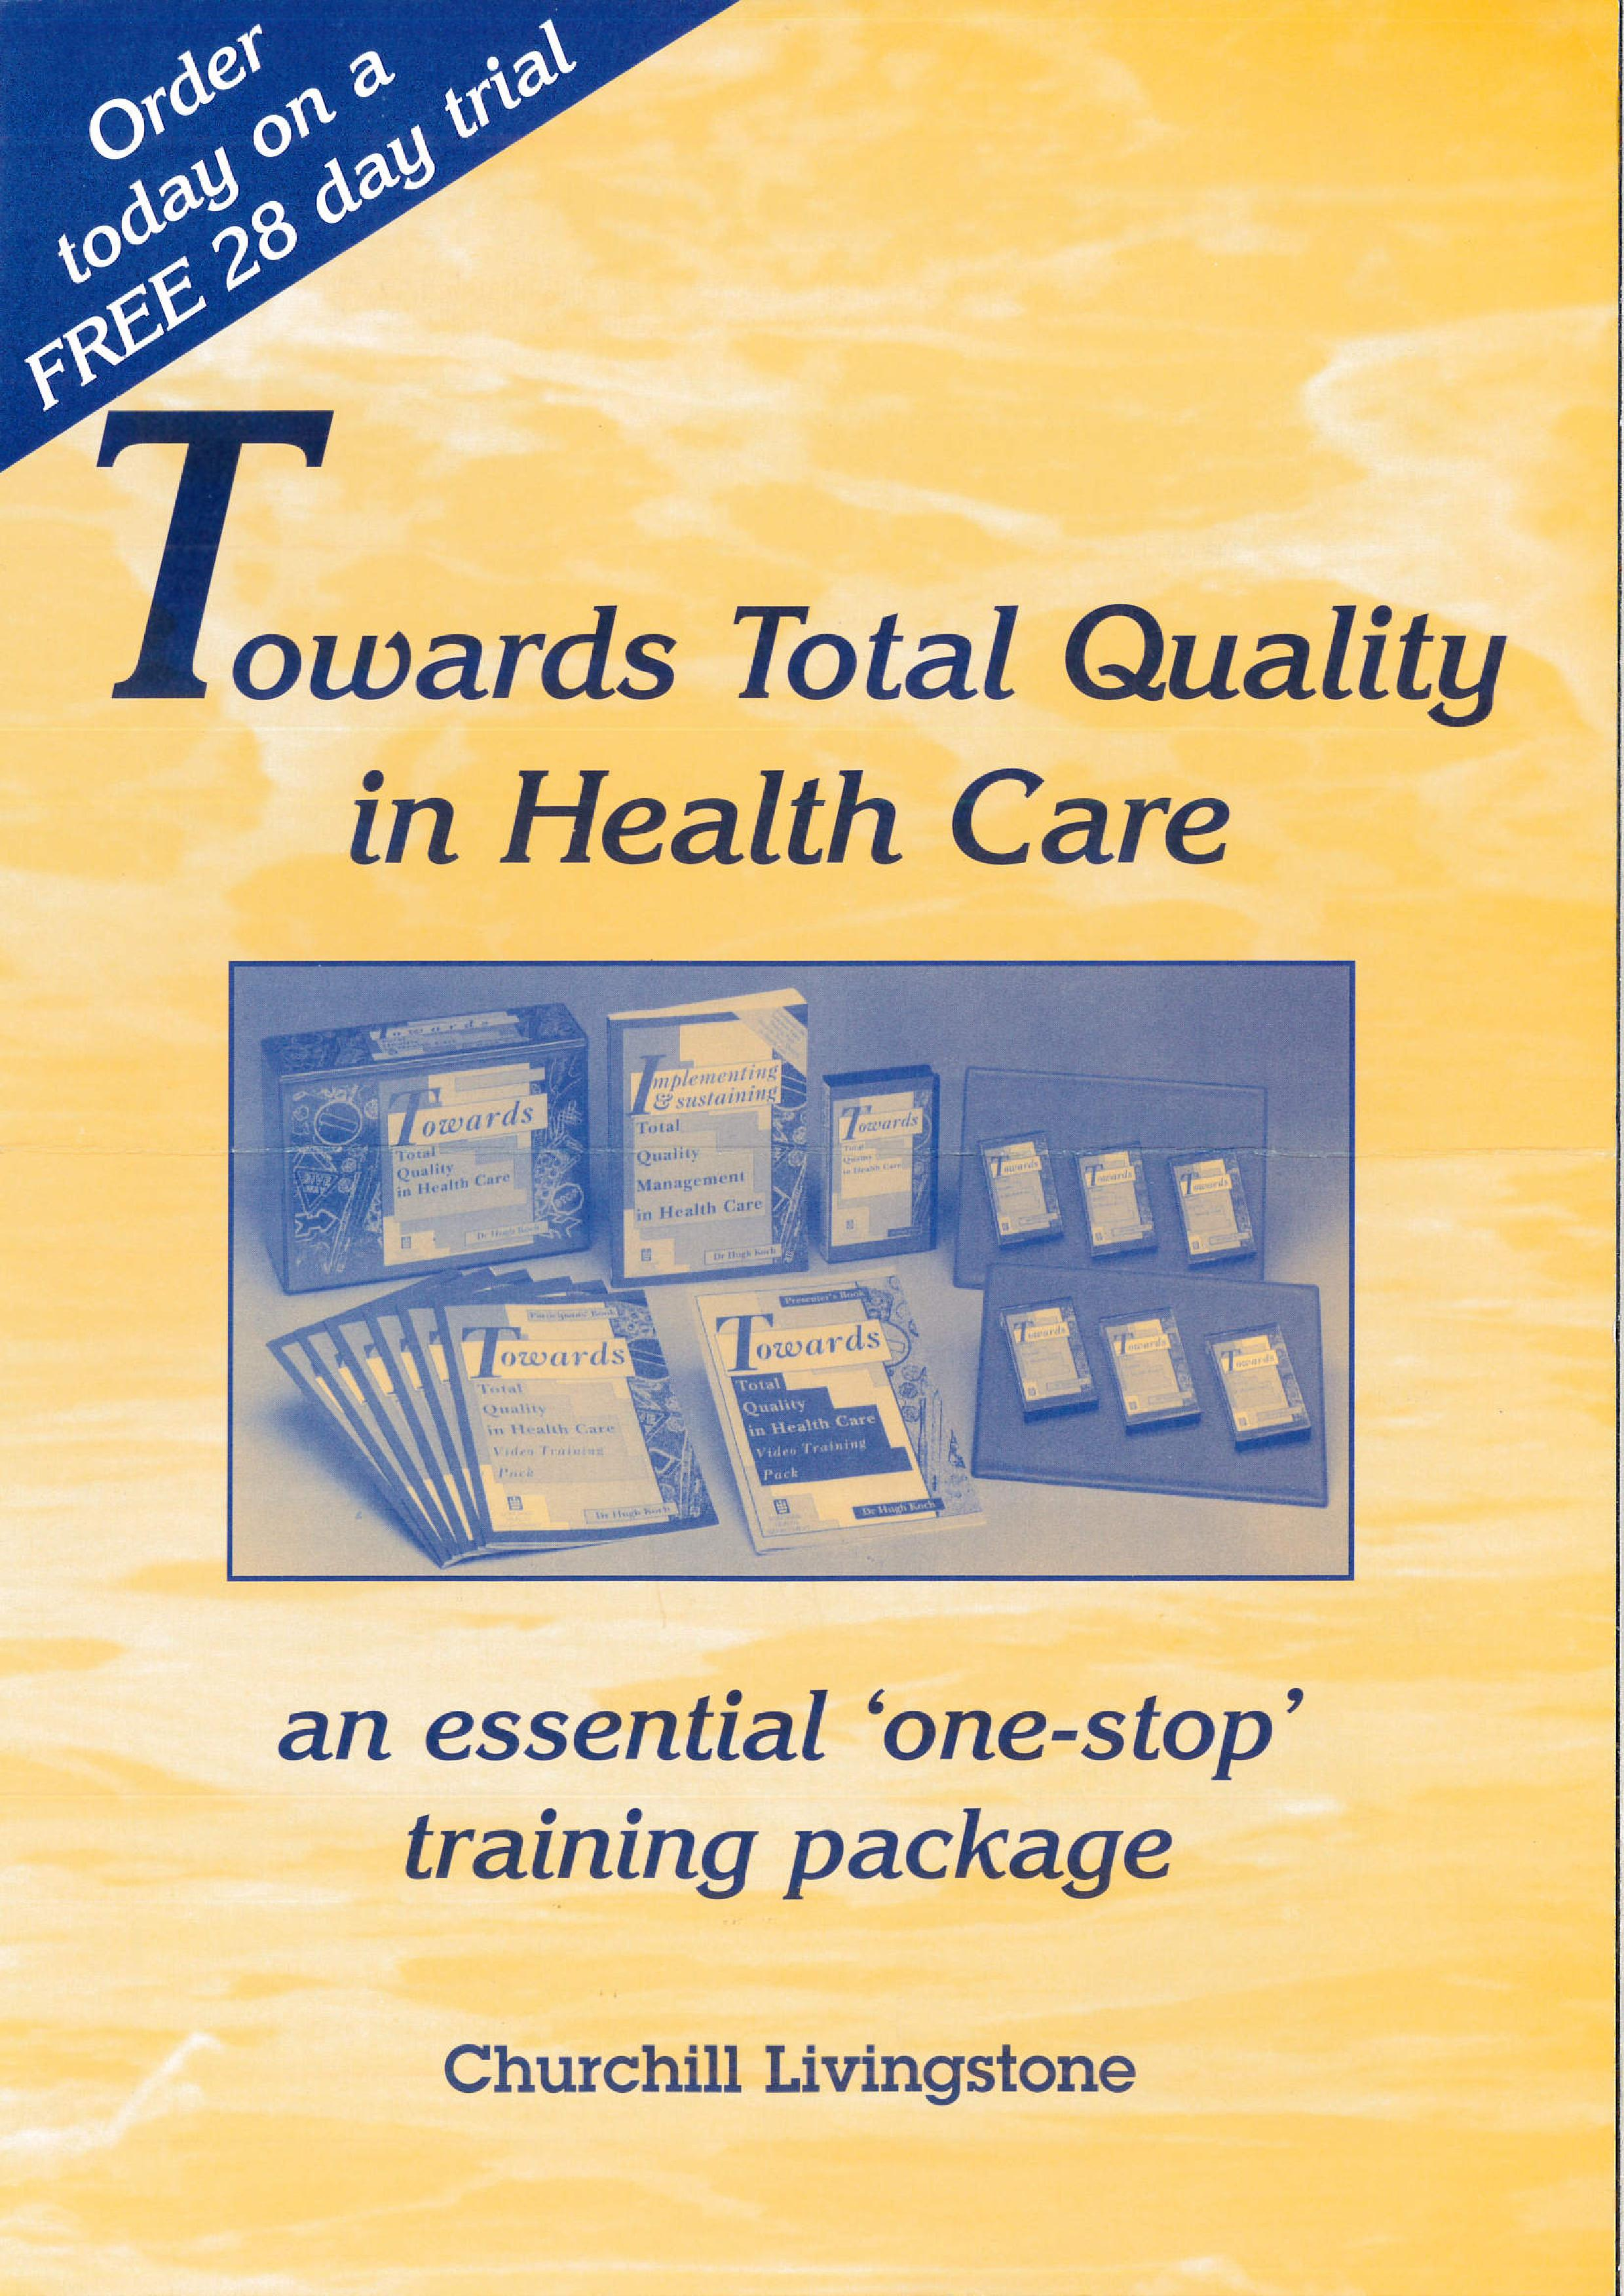 Total Quality in health care